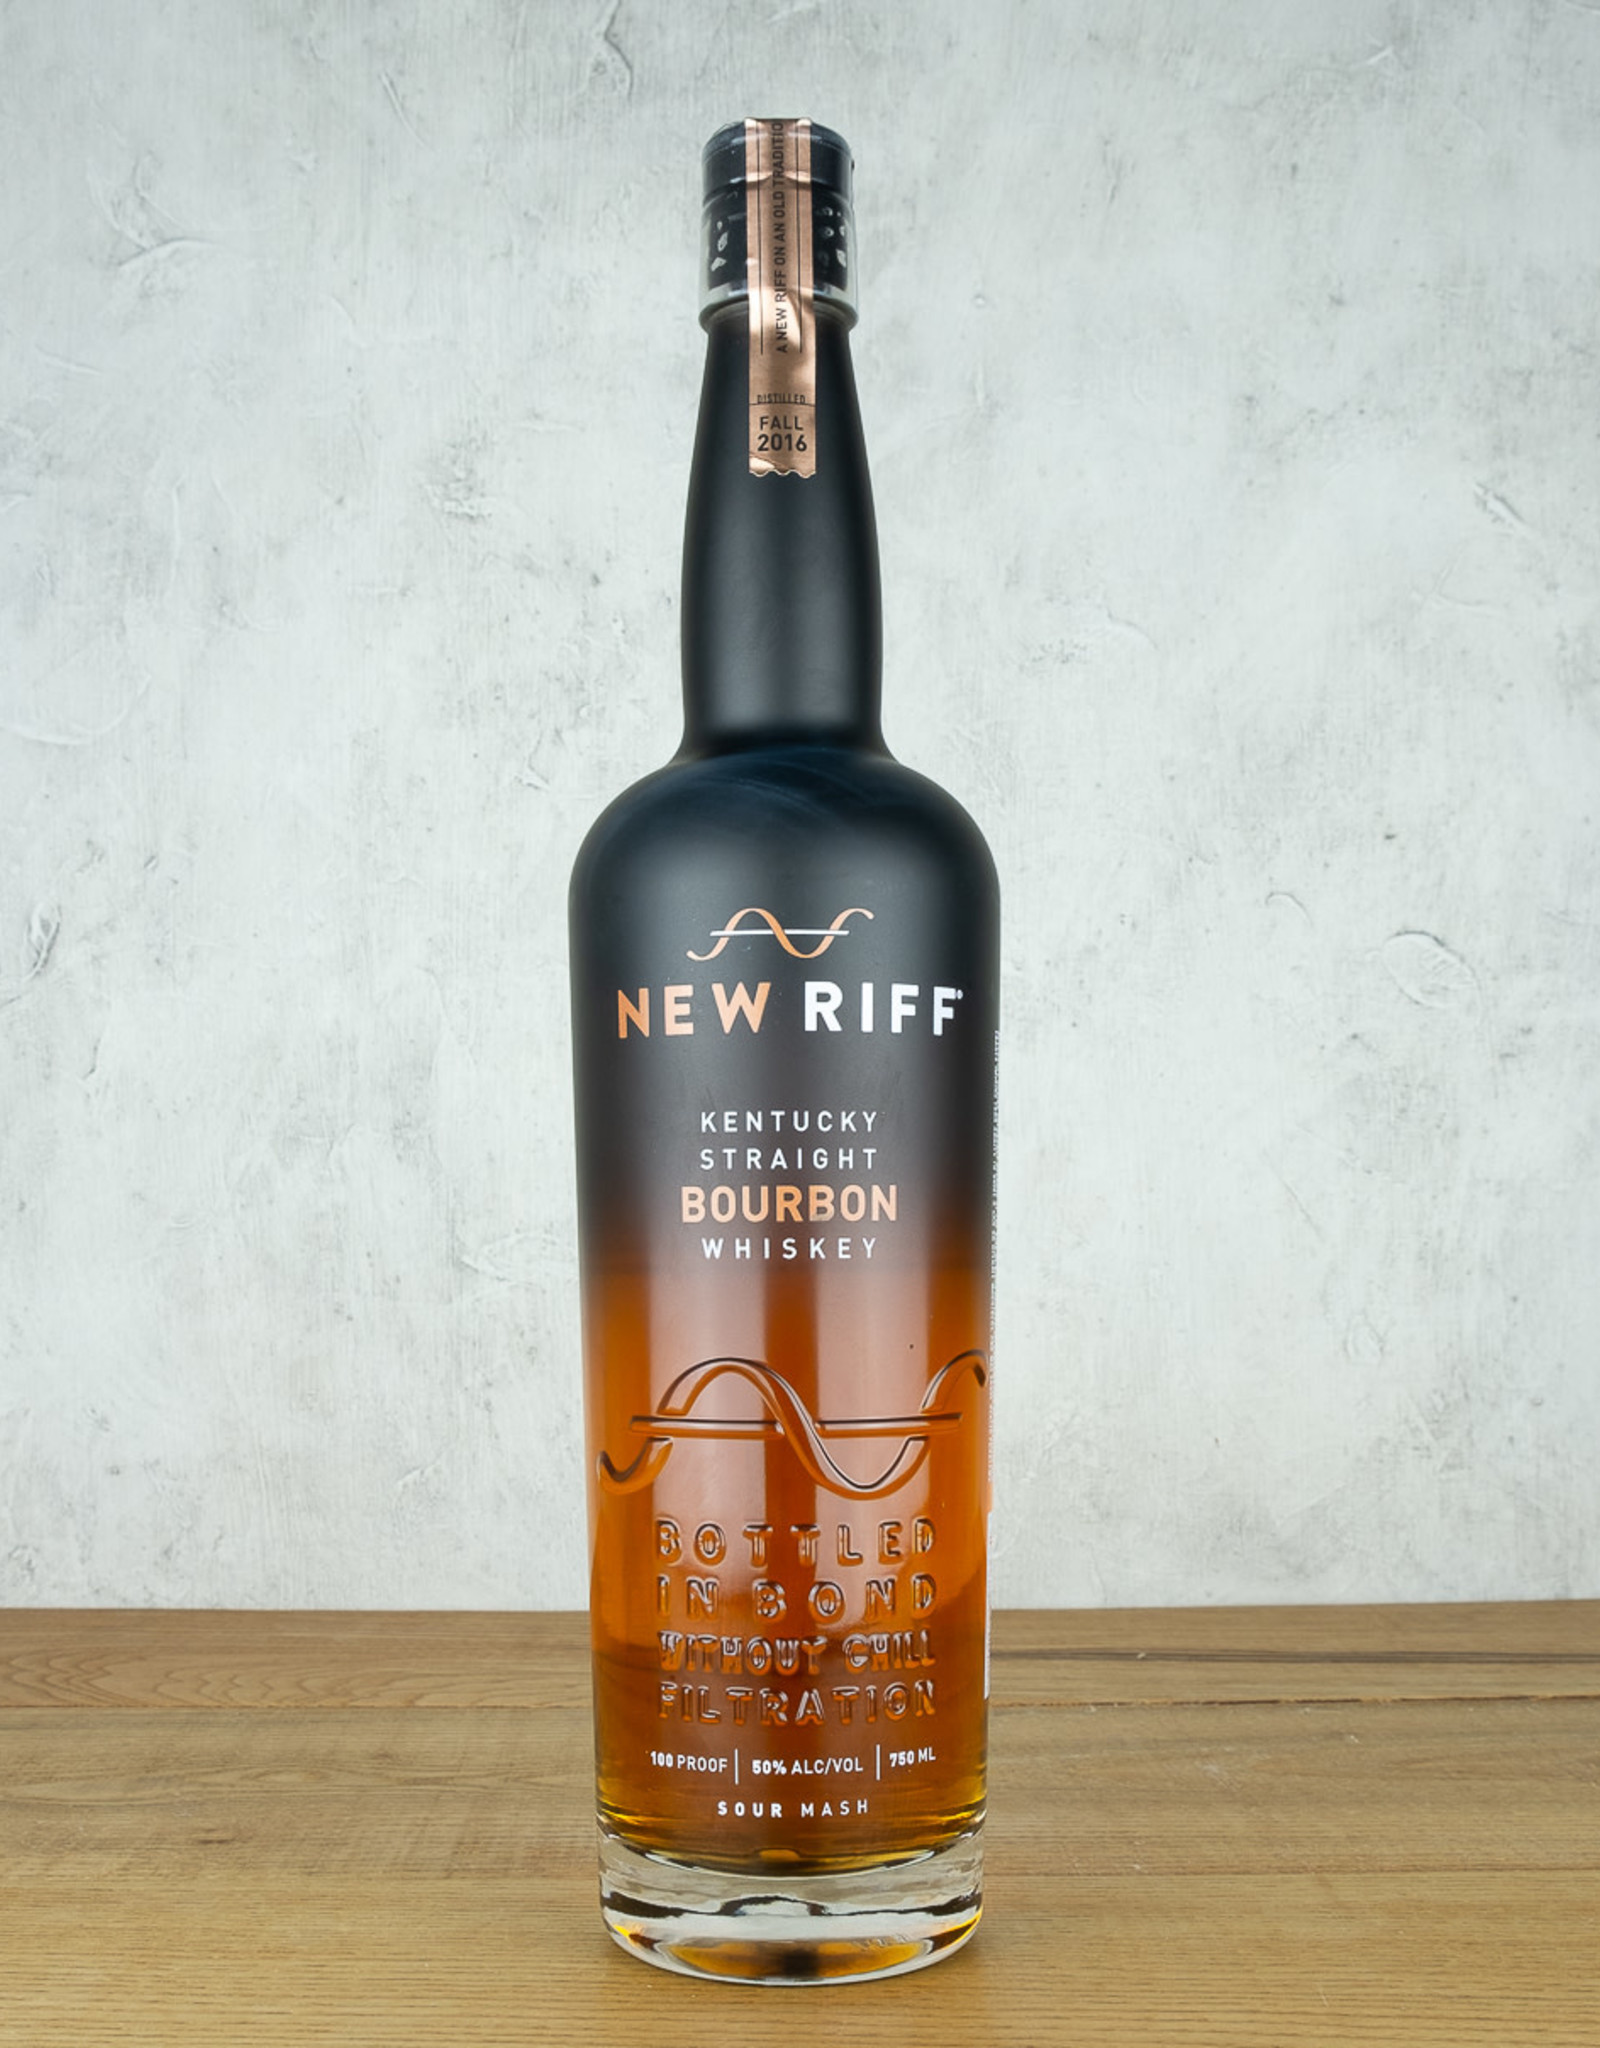 New Riff Bourbon Bottled in Bond